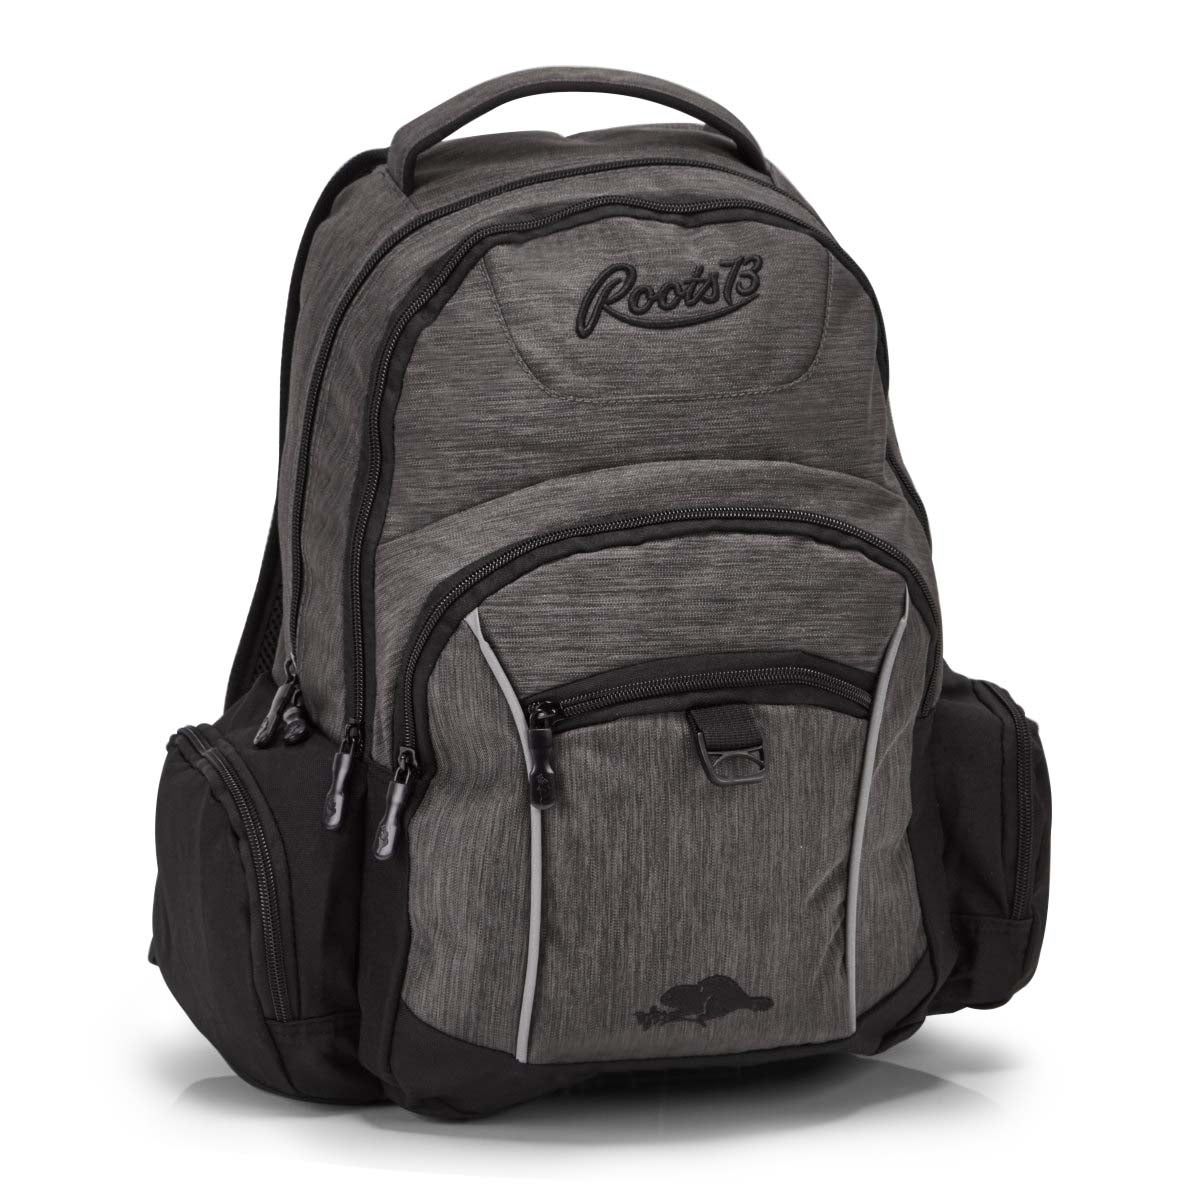 Roots73 grey large backpack